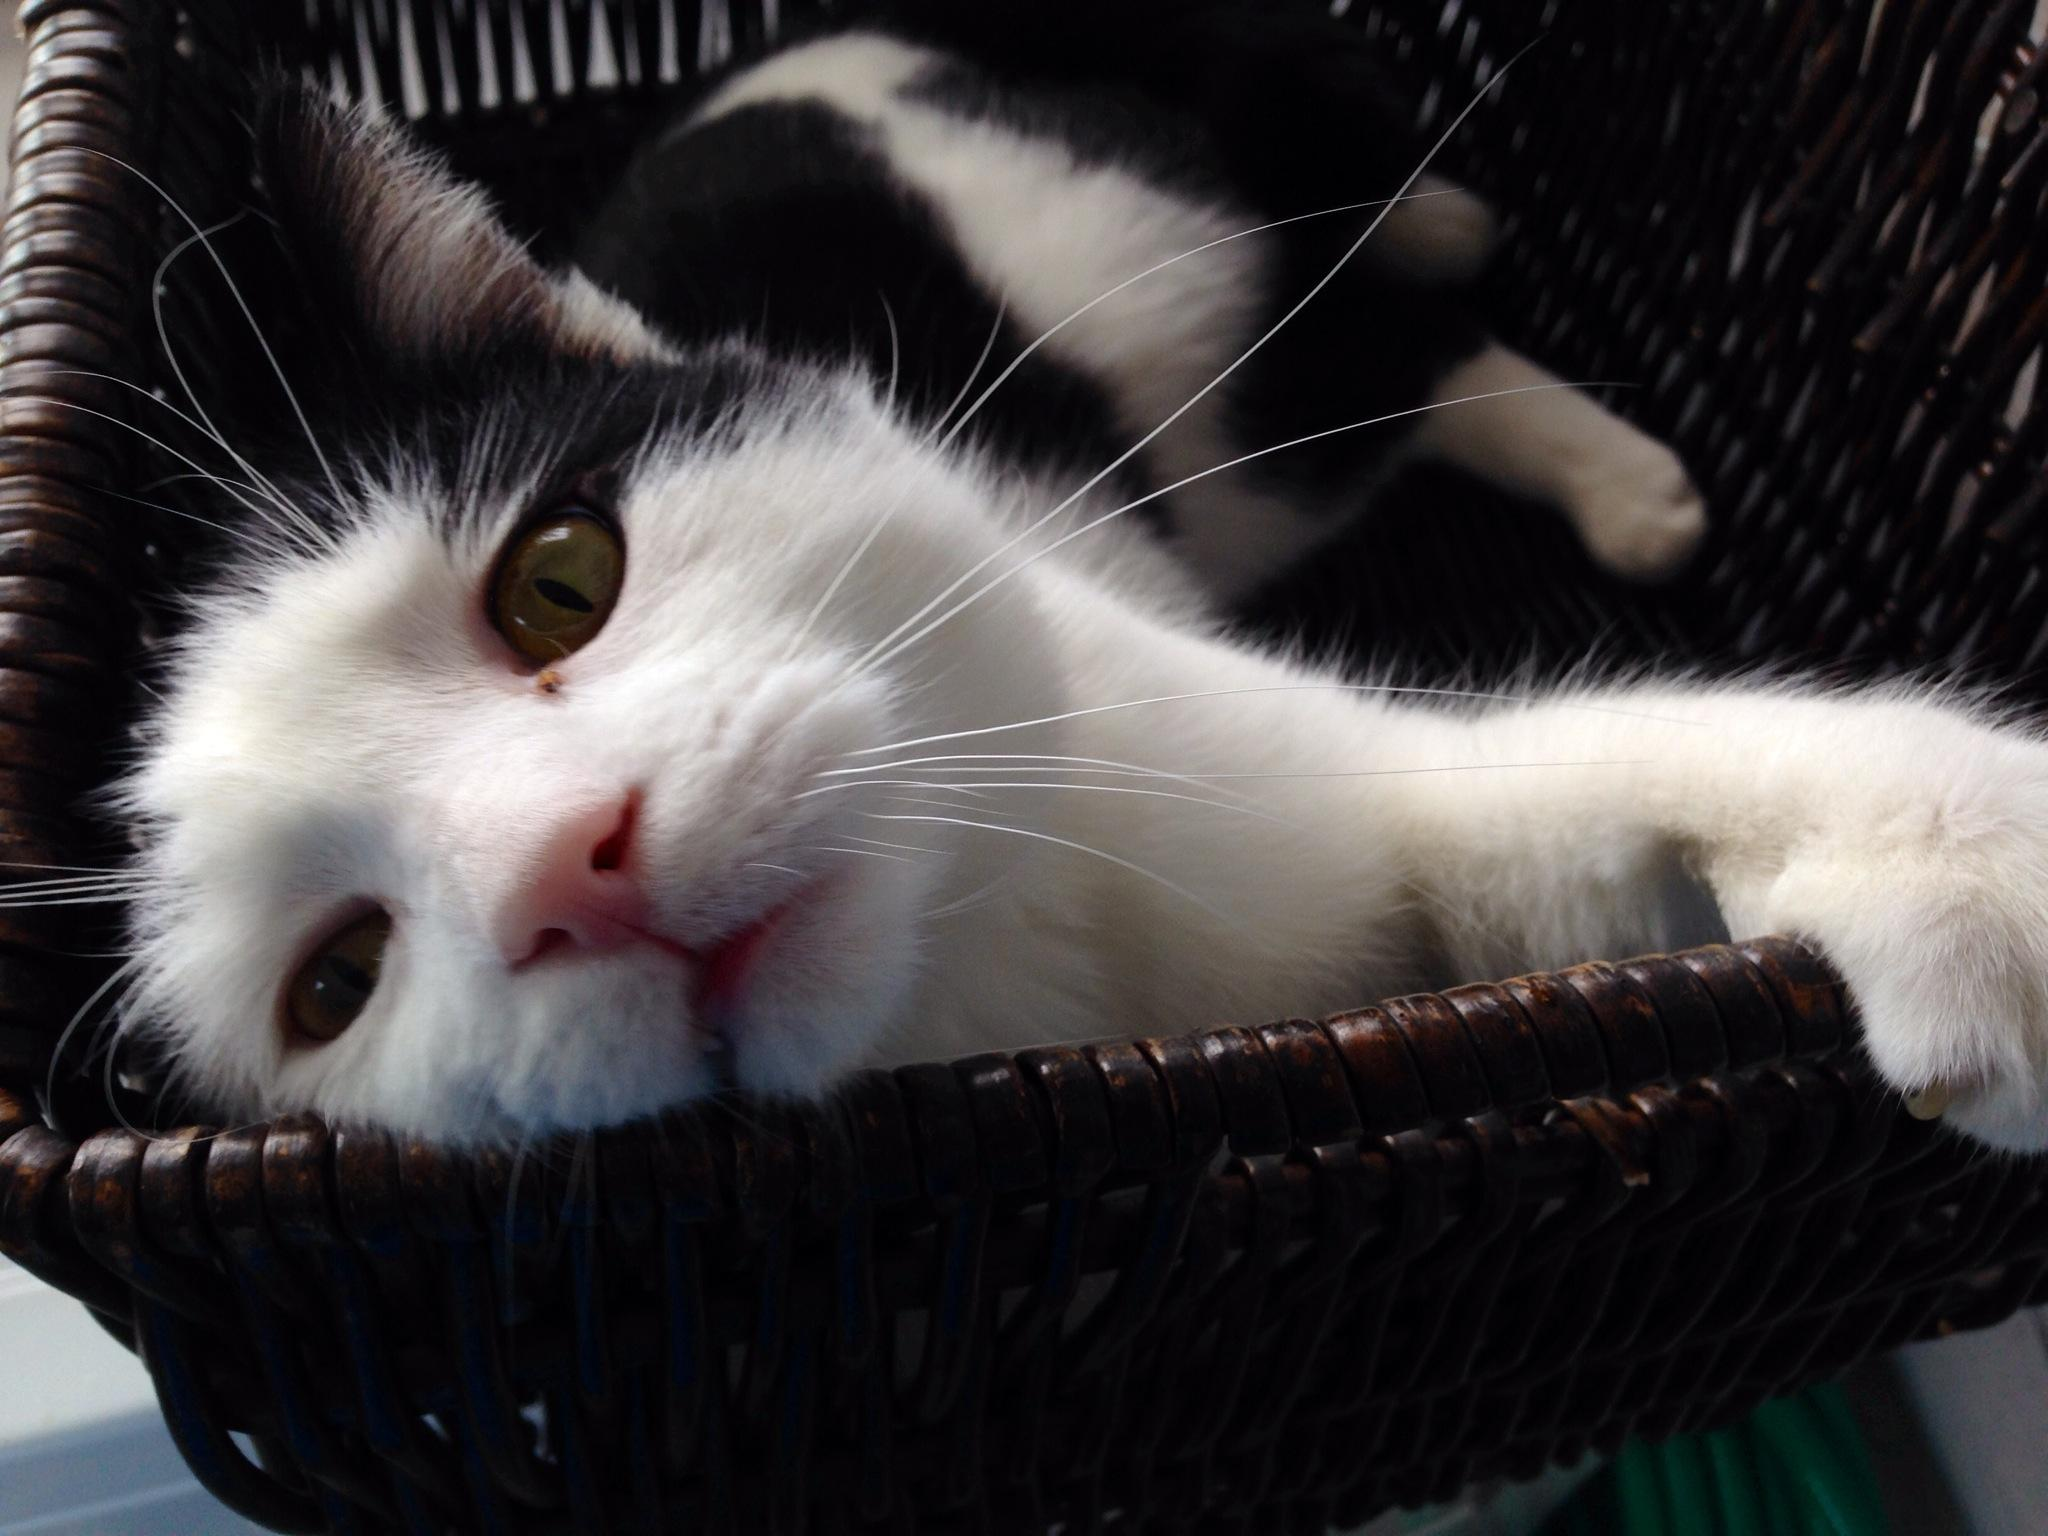 ADOPTED!! Chester is FIV+ and was recently surrendered to us. We started him on our regime of supplements and quality food. Not too much food though as he's bit overweight… Chester is a sweet, sweet boy!